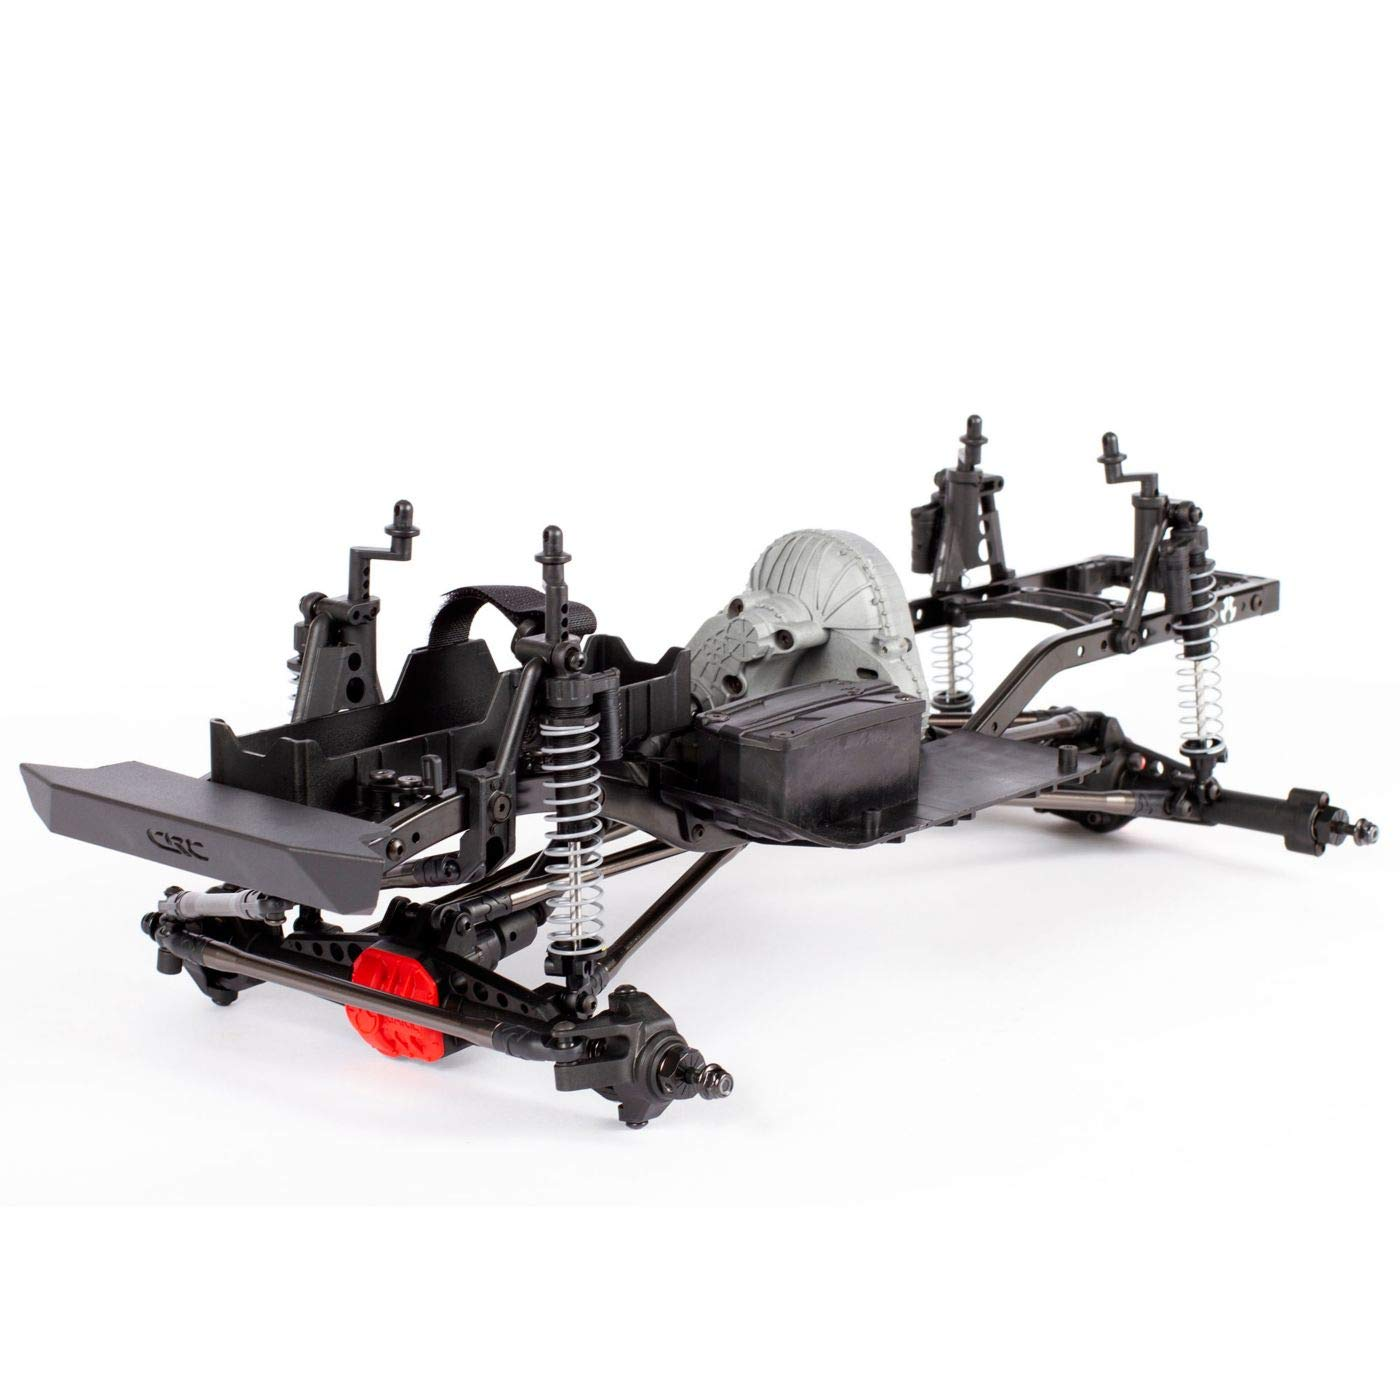 Axial SCX10 II Raw Builder's Scale Trail RC Chassis Kit 61DRZYPfSrL._SL1400_